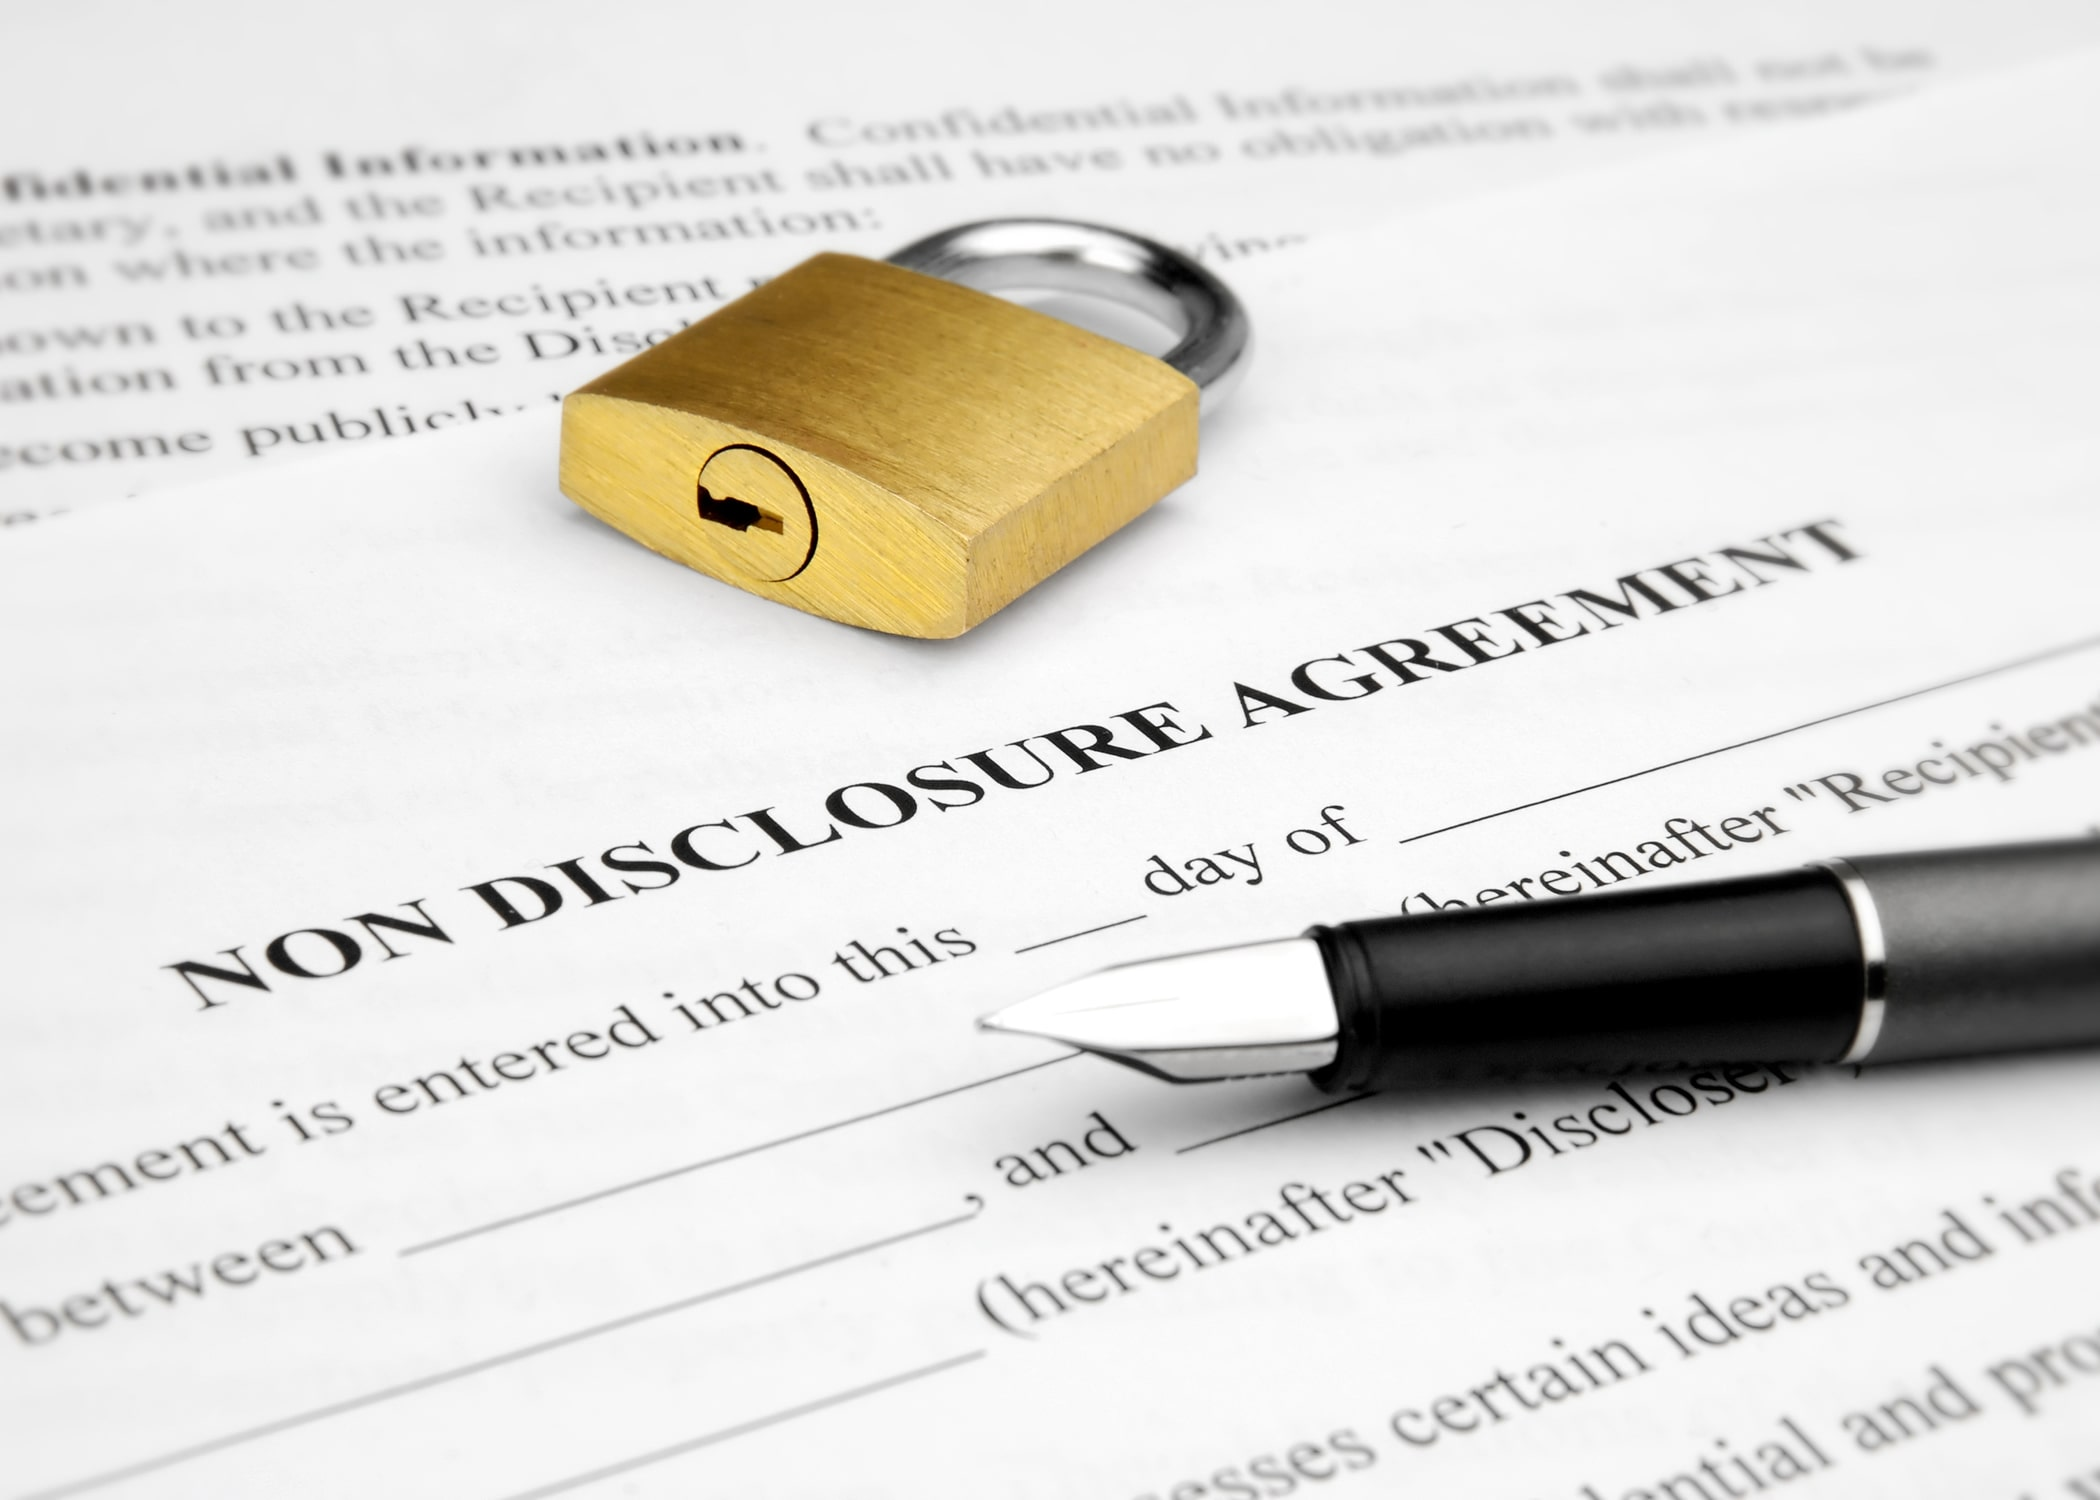 Webinar: Considerations for Disclosing EEO-1 Forms Within and Outside Your Organization